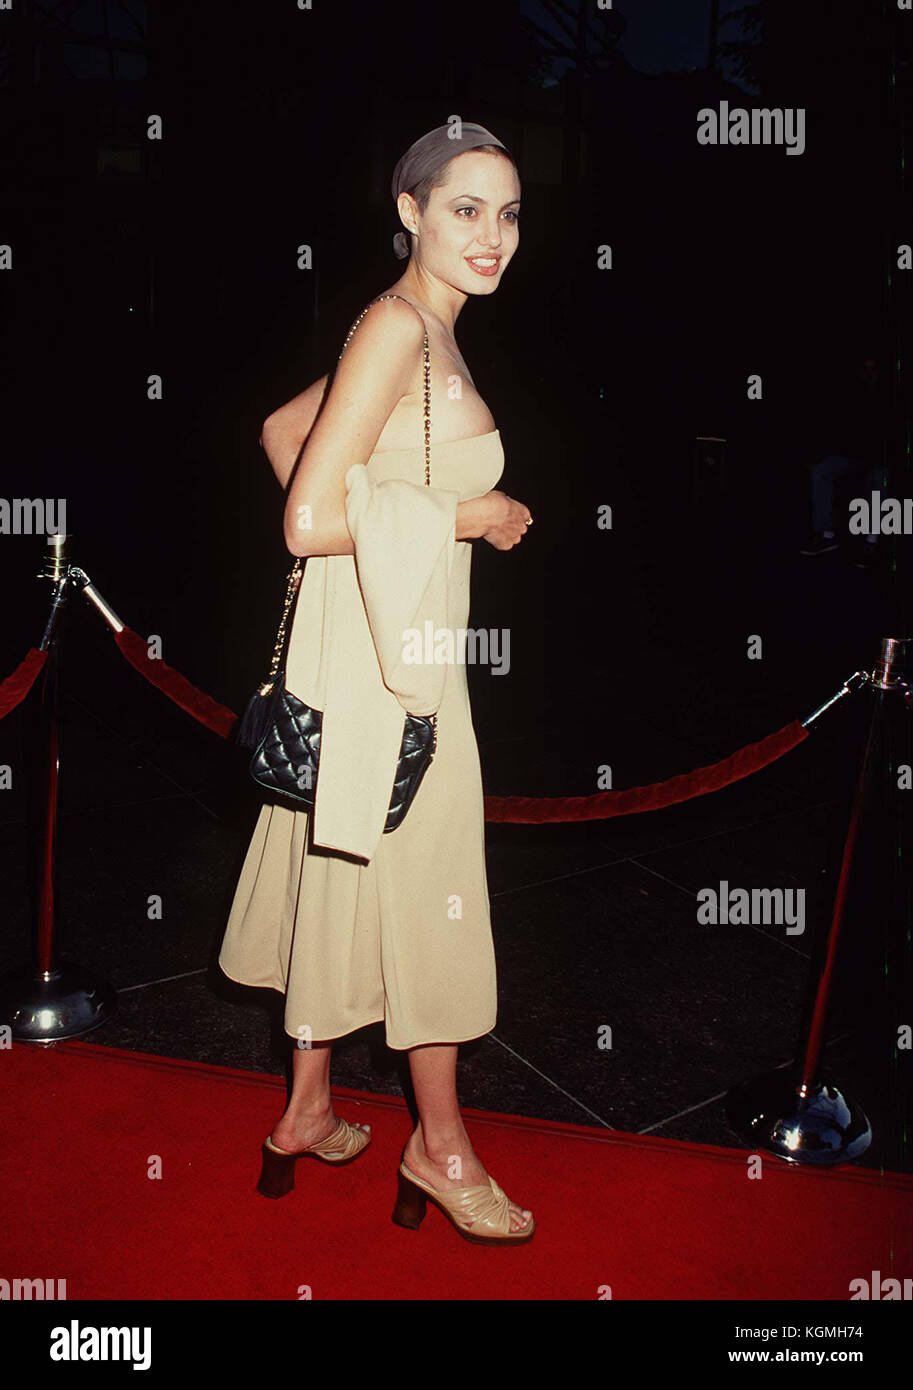 Angelina Jolie 078 Fashion Full Length People Angelina